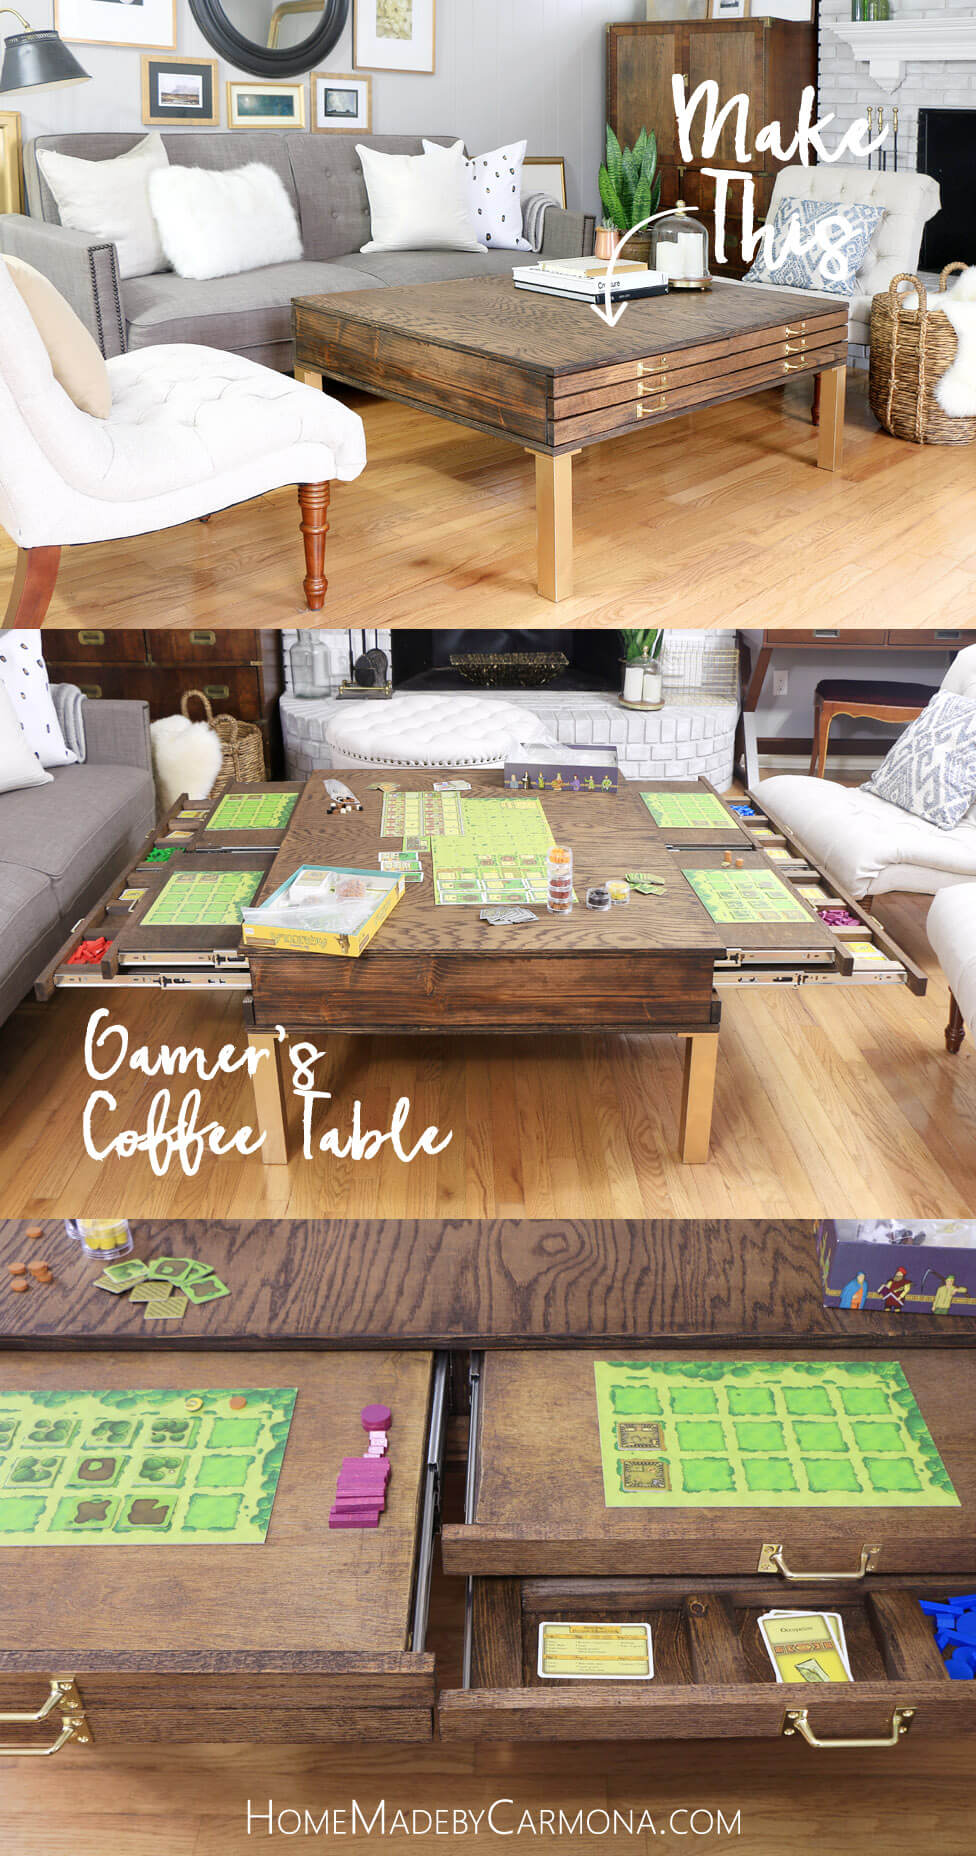 How To Build This Gamer's Coffee Table